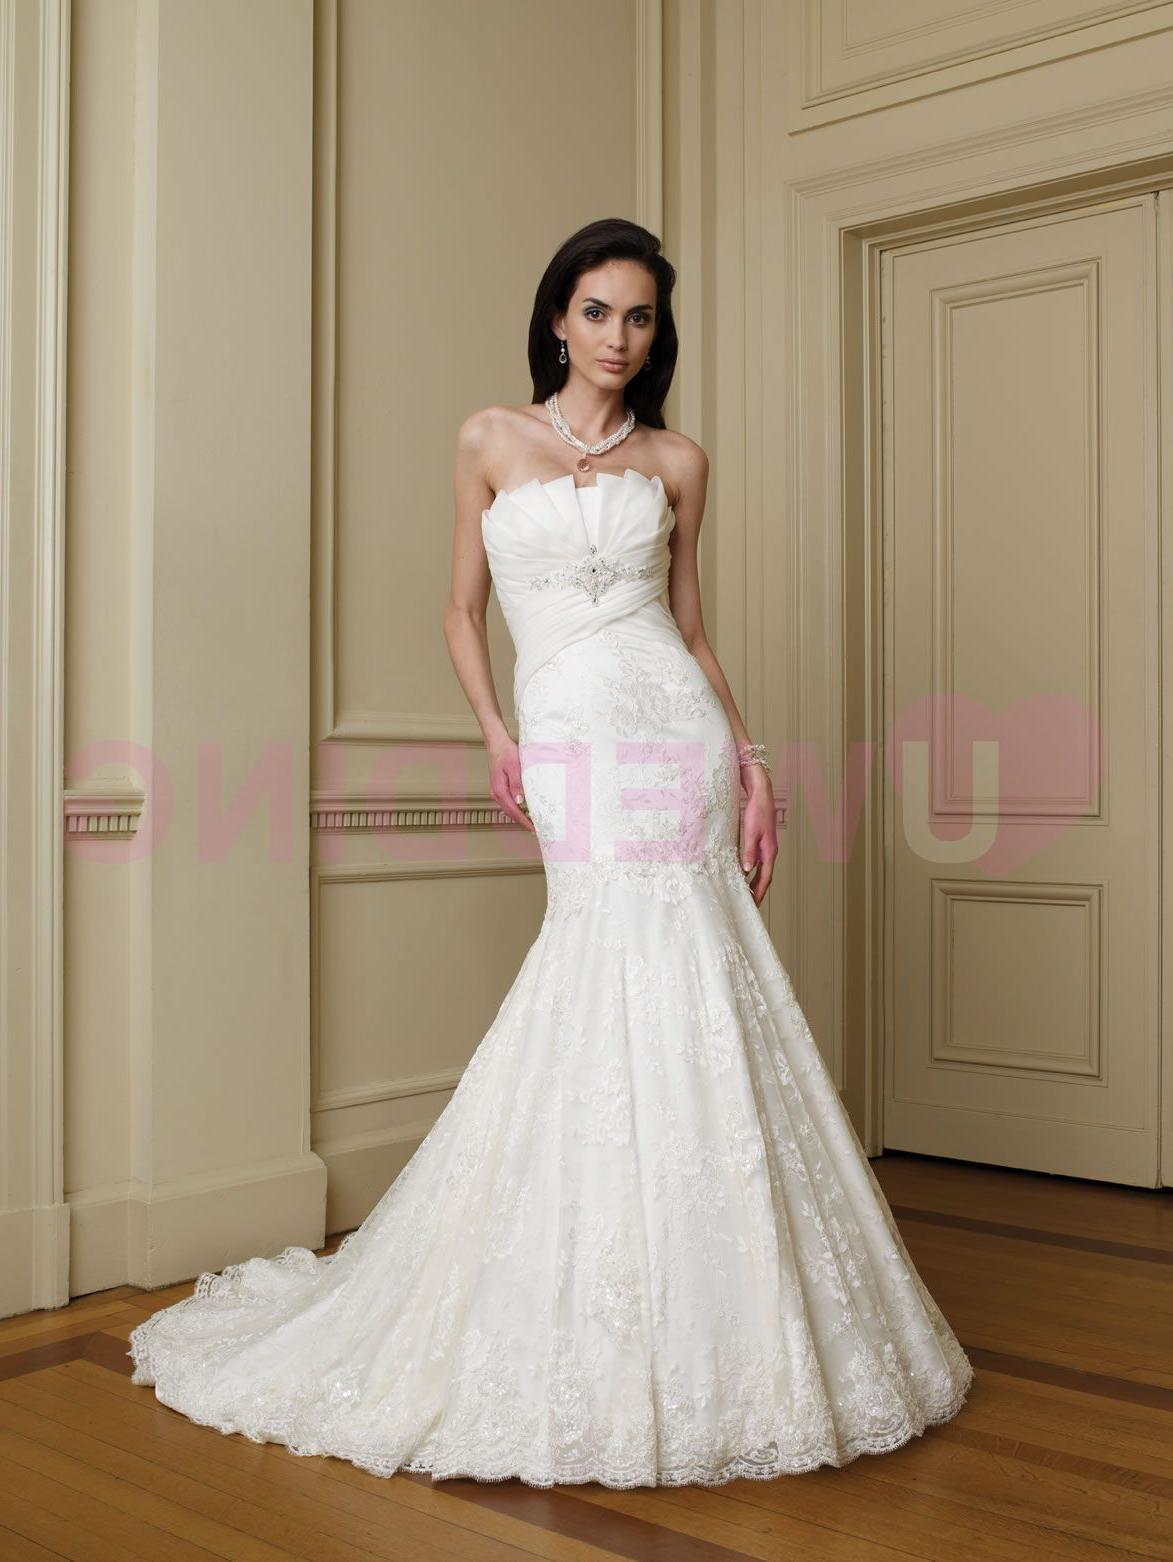 Strapless heavy organza and Chantilly lace mermaid gown, architecturally